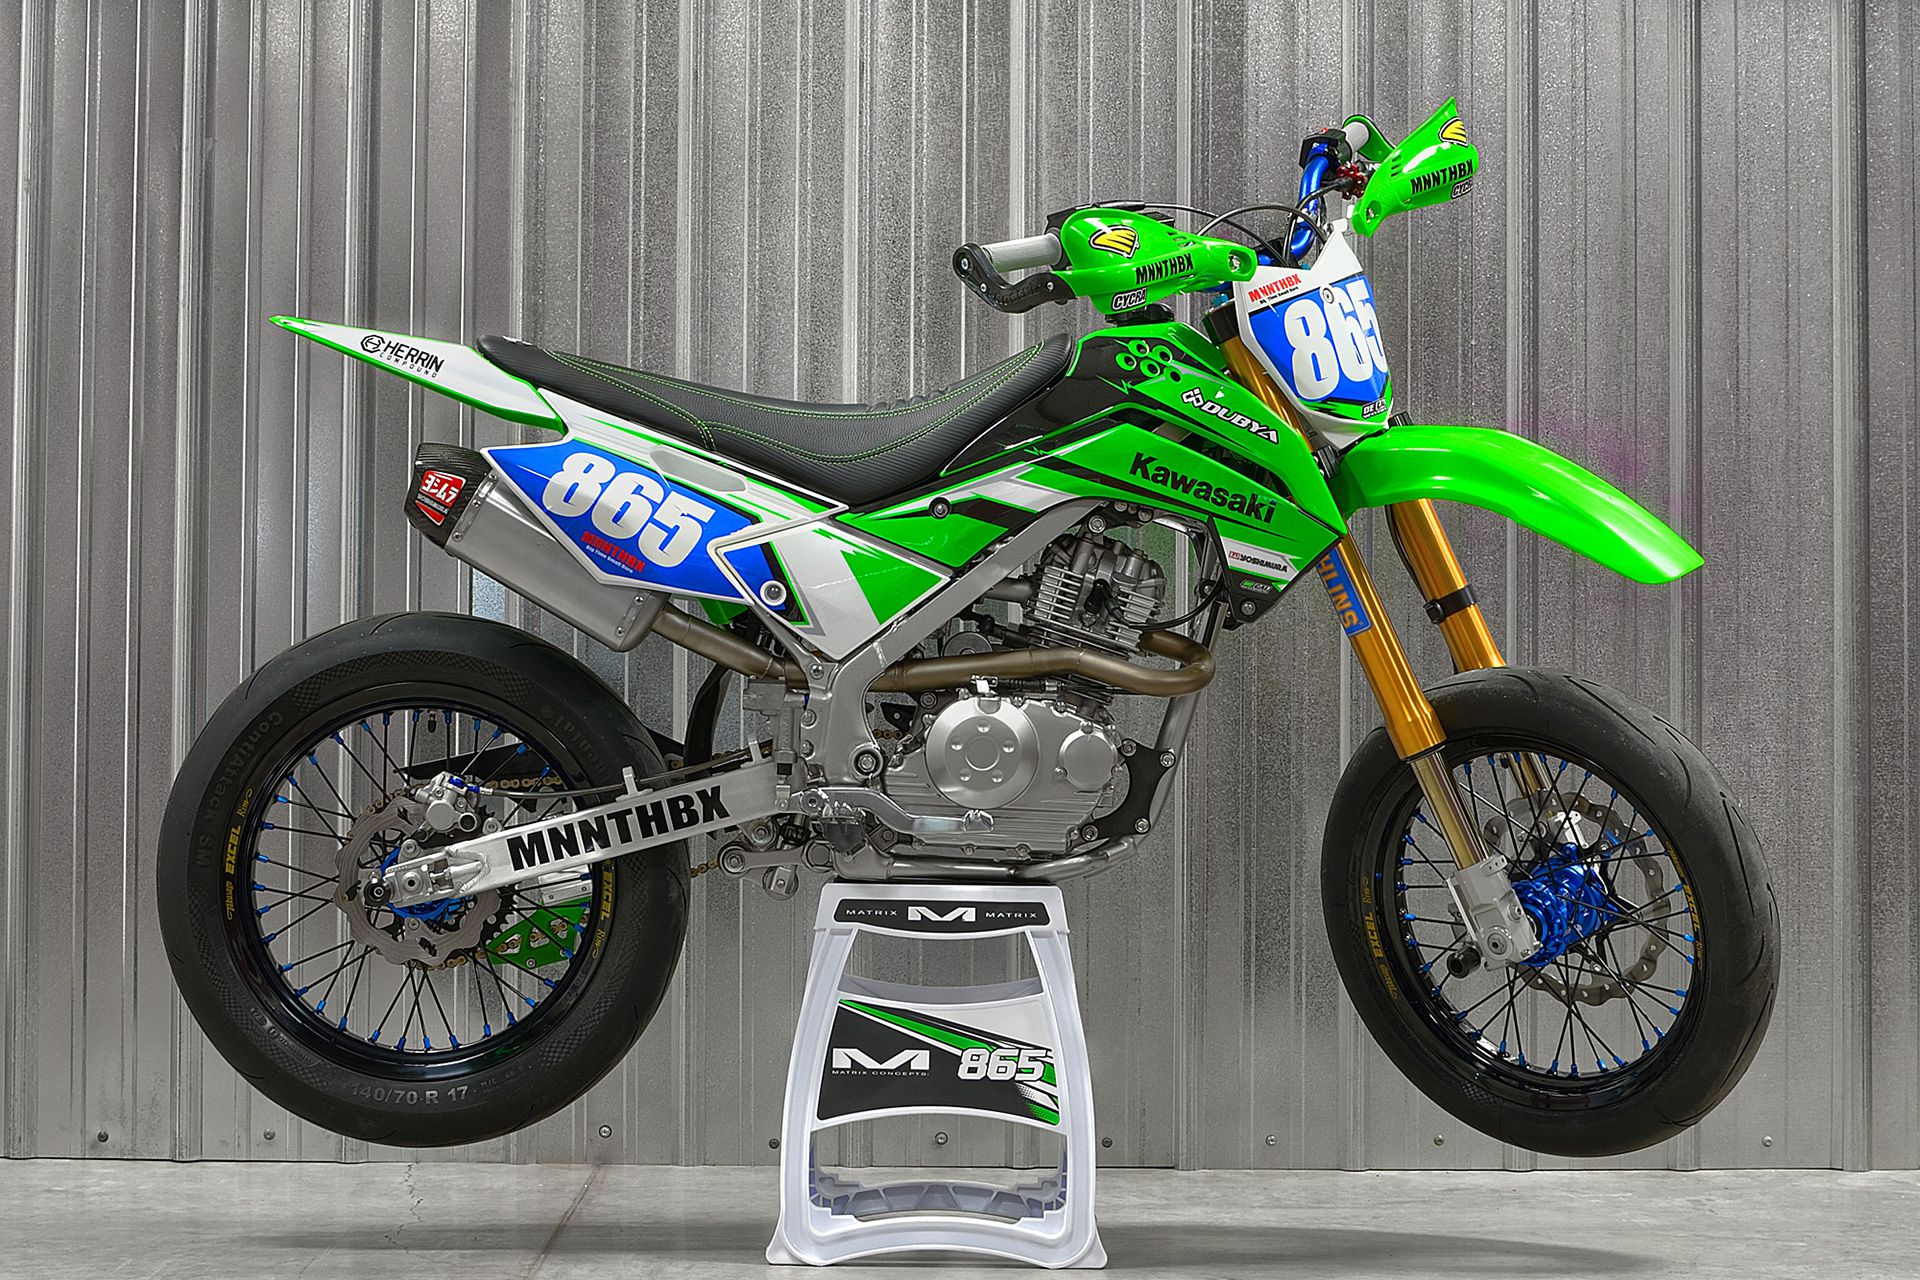 Fantastic Mnnthbx Upgrades A Kawasaki Klx140G To Destroy Backroads And Ocoug Best Dining Table And Chair Ideas Images Ocougorg